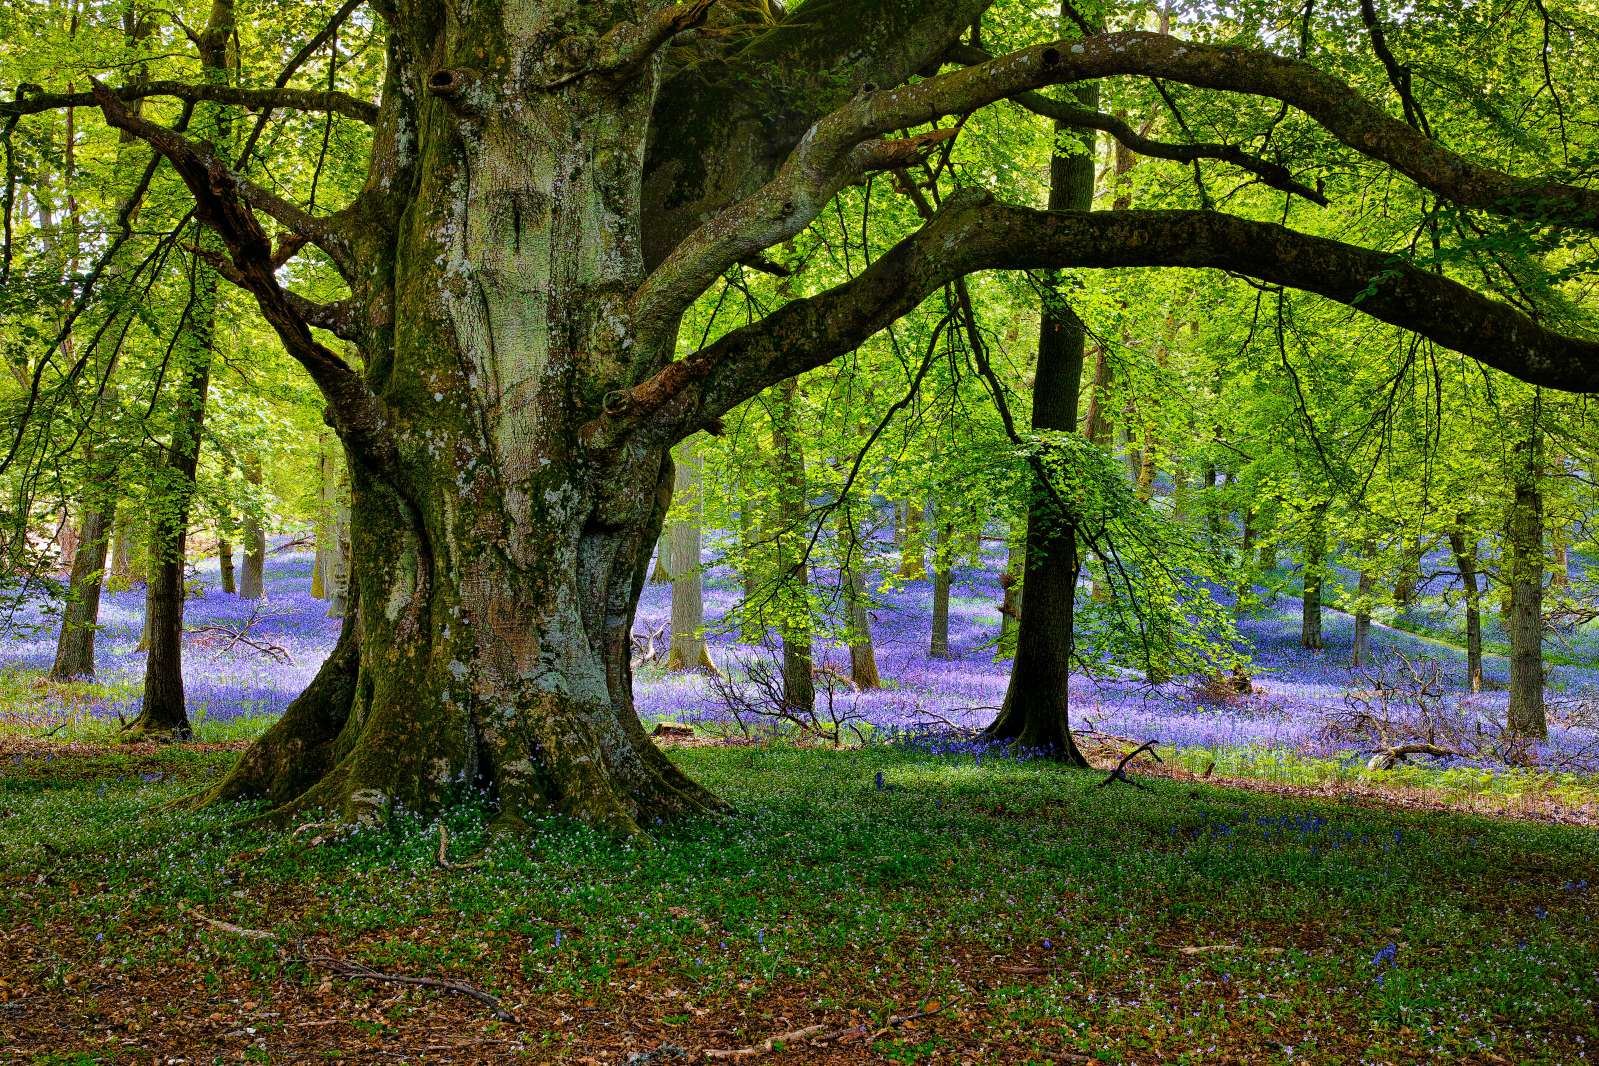 The tree lined countryside around Marlow in Buckinghamshire is the ideal place to escape the world, relax and take part in a guided forest bathing walk. It promotes good mental health and wellbeing and helps you to recharge the batteries.